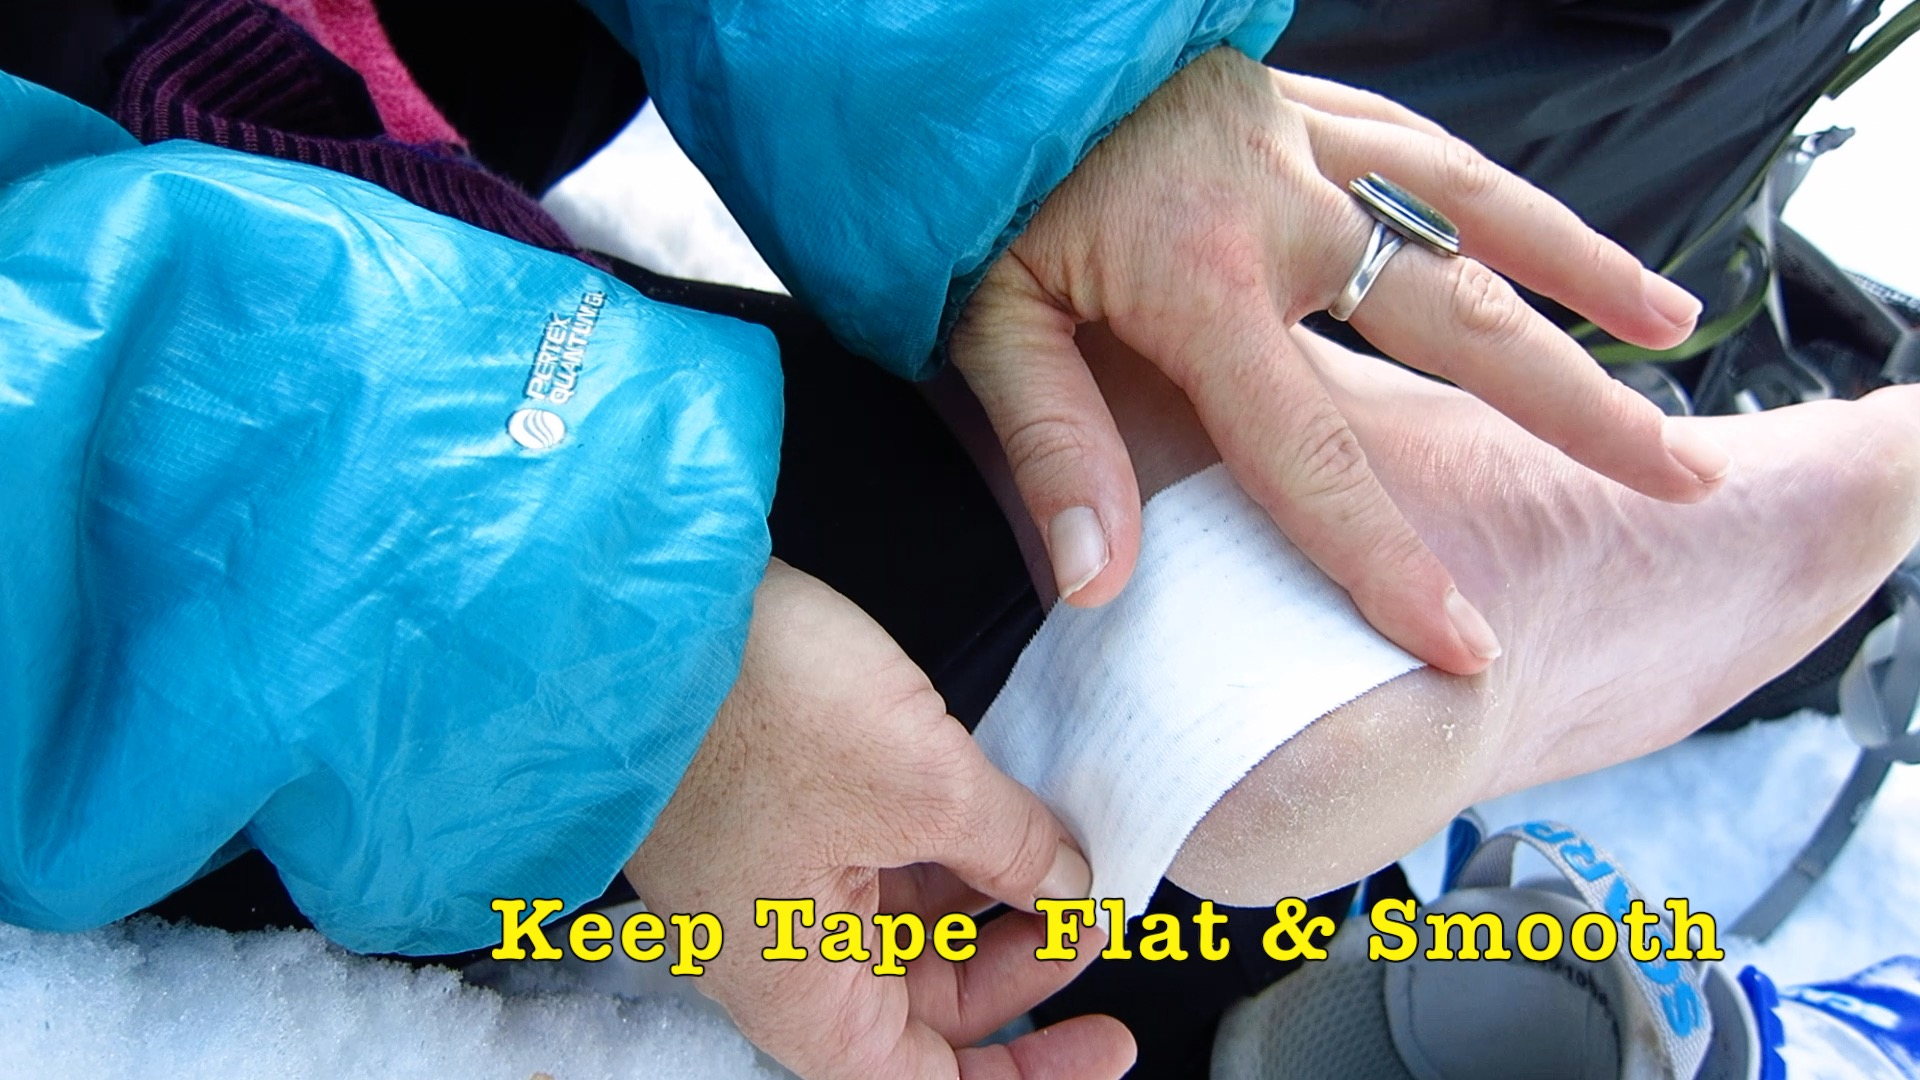 Sage shares 3 tips for taping blisters